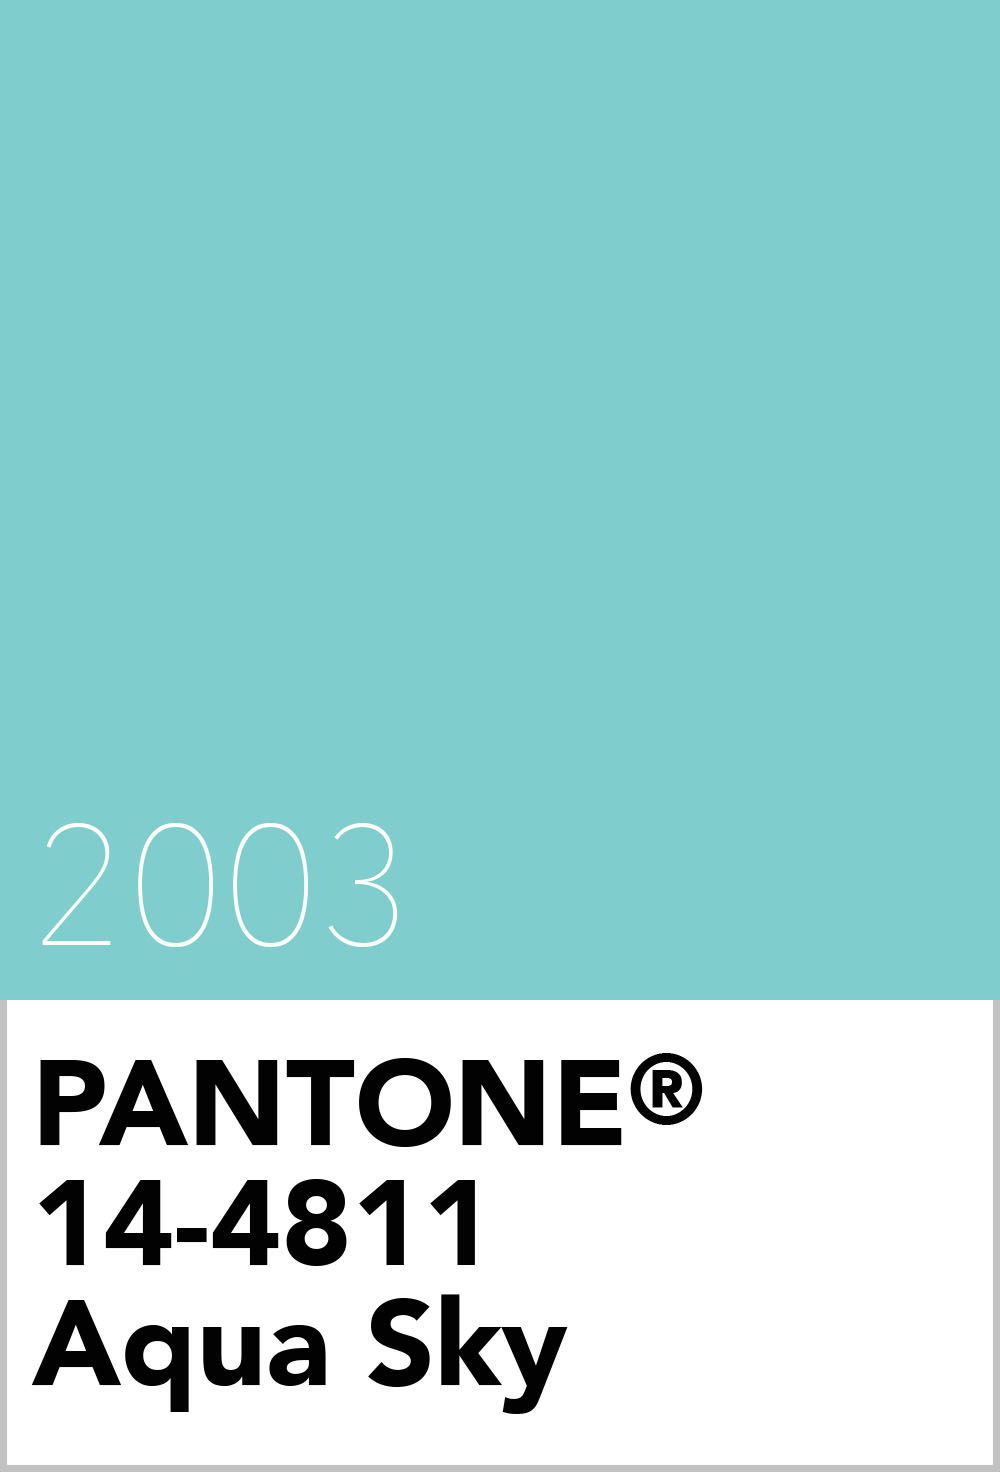 pantone colour of the year 2003